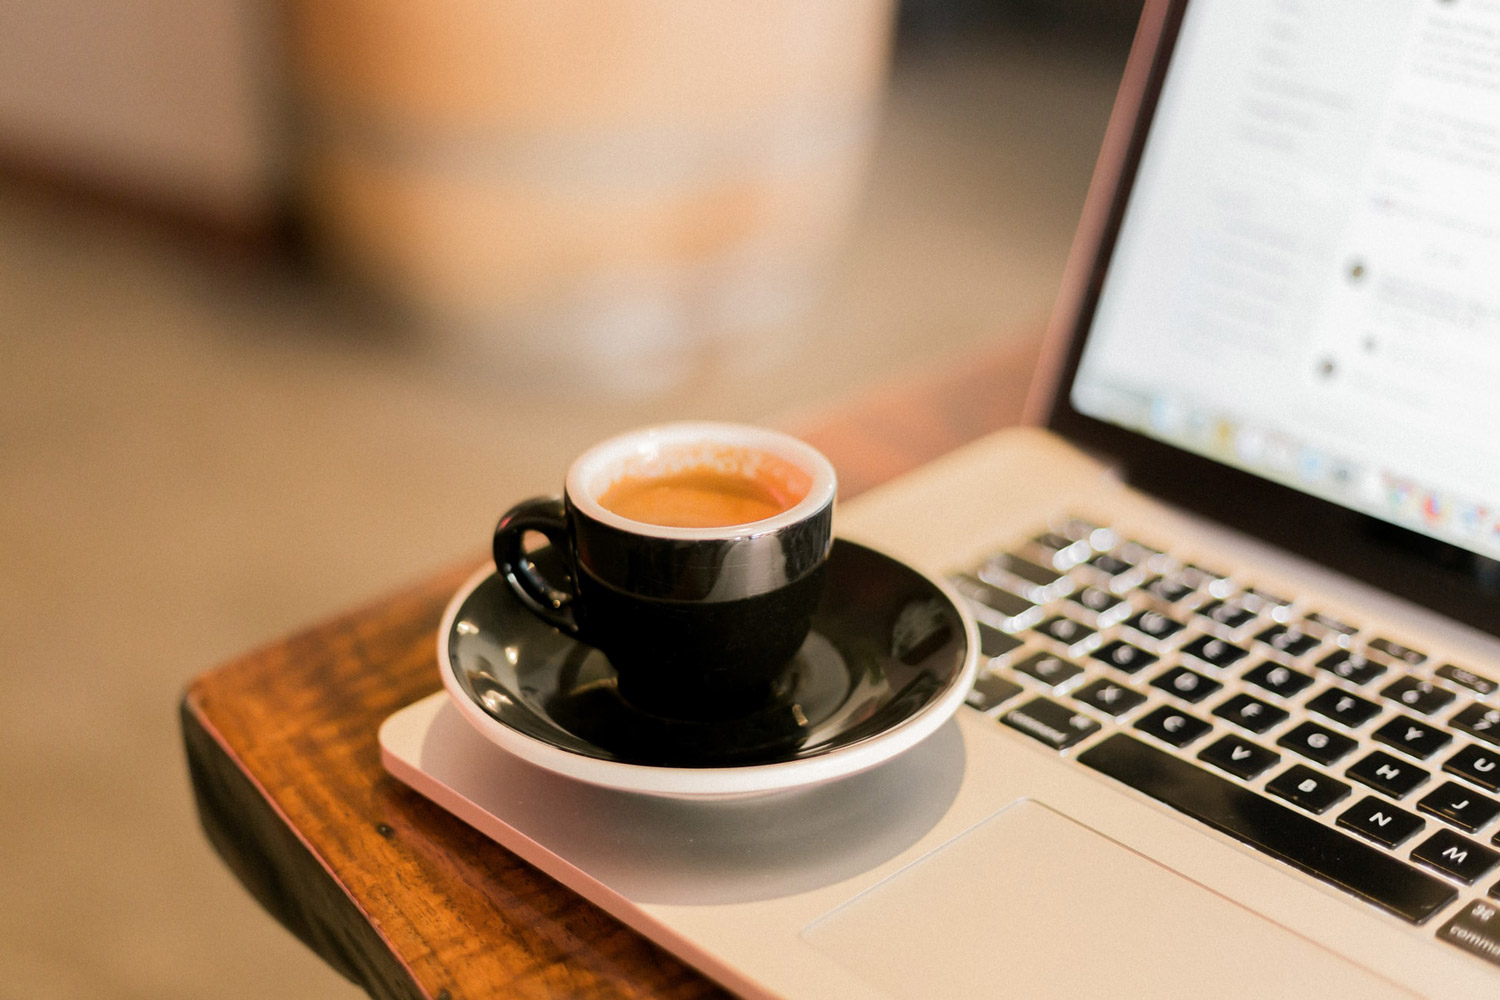 A cup of coffee placed on an opened laptop